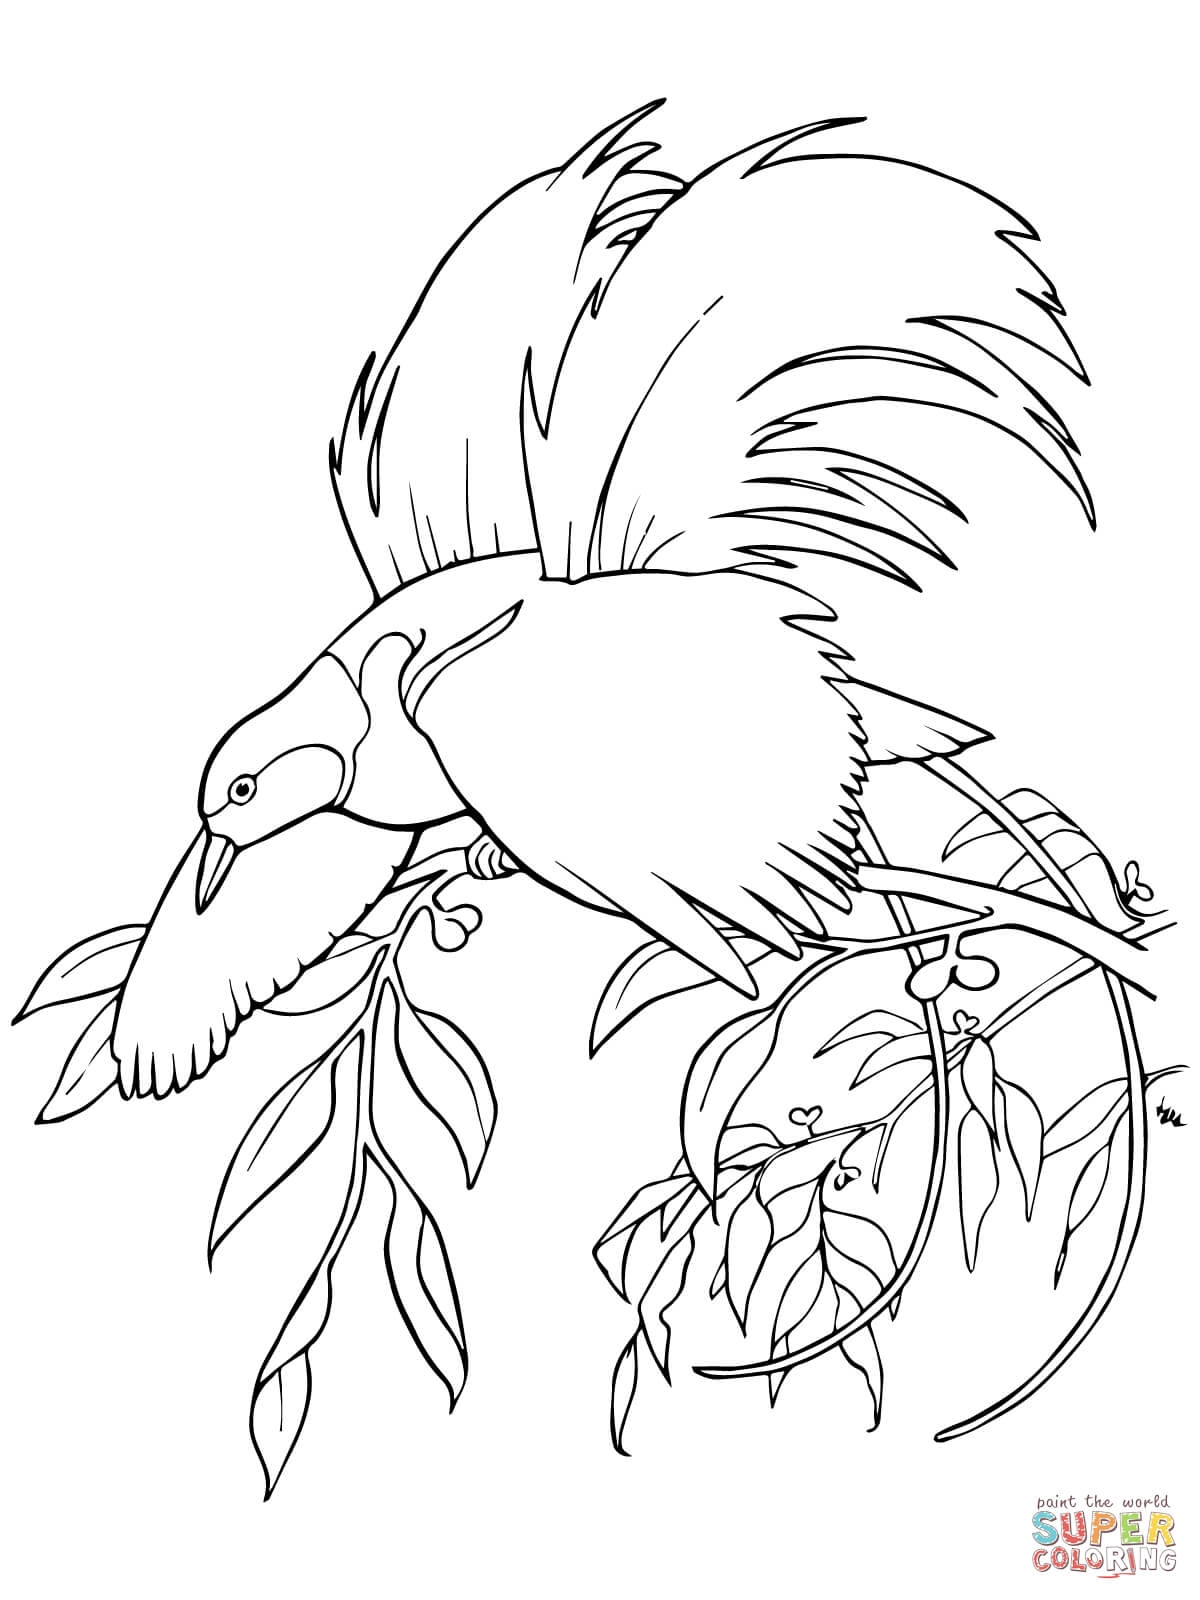 cardinal coloring page - greater bird of paradise